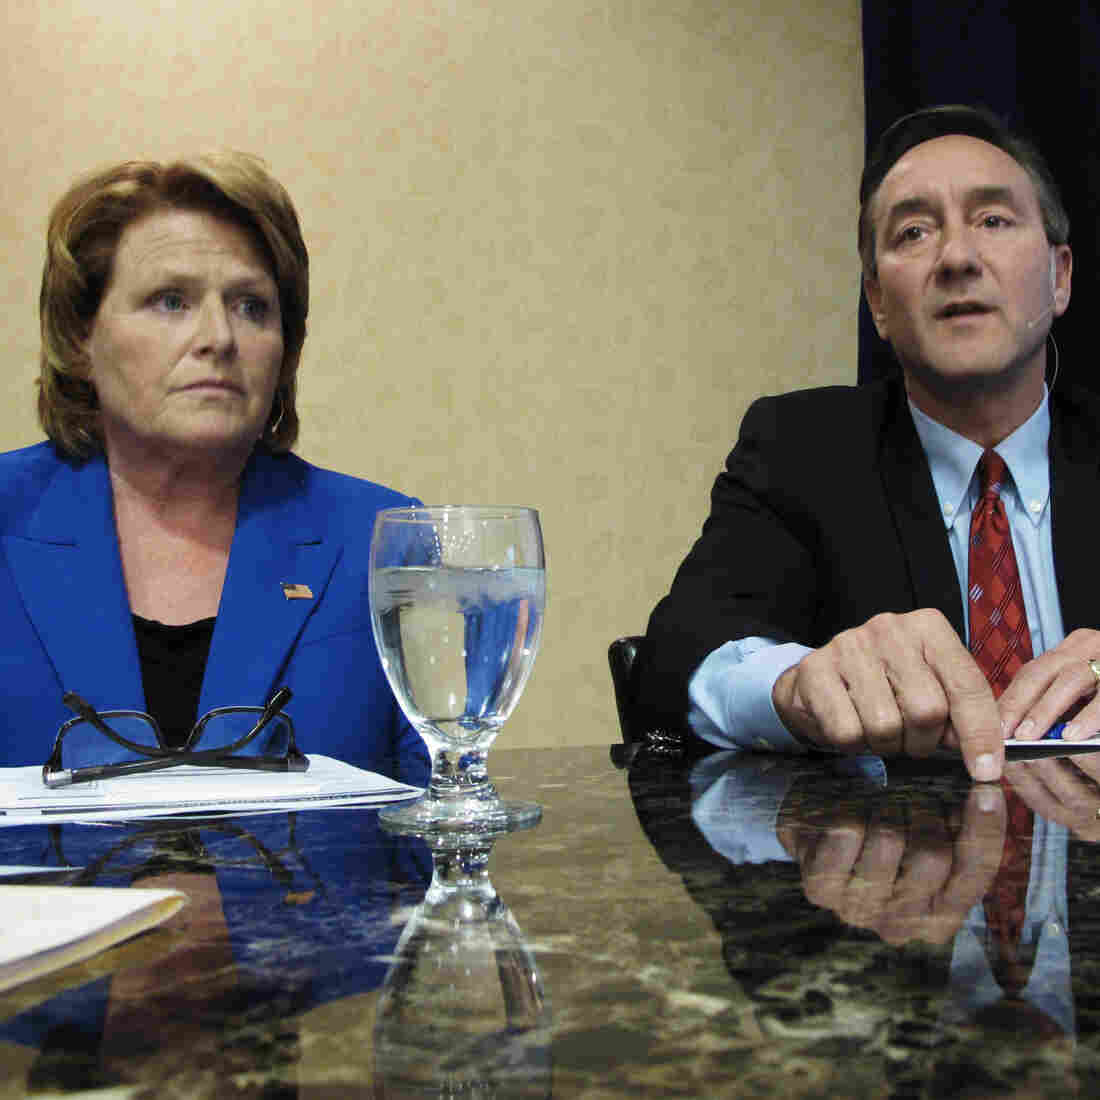 Democratic Senate candidate Heidi Heitkamp and her Republican opponent, Rep. Rick Berg, attend a North Dakota Chamber of Commerce forum in Bismarck last week.